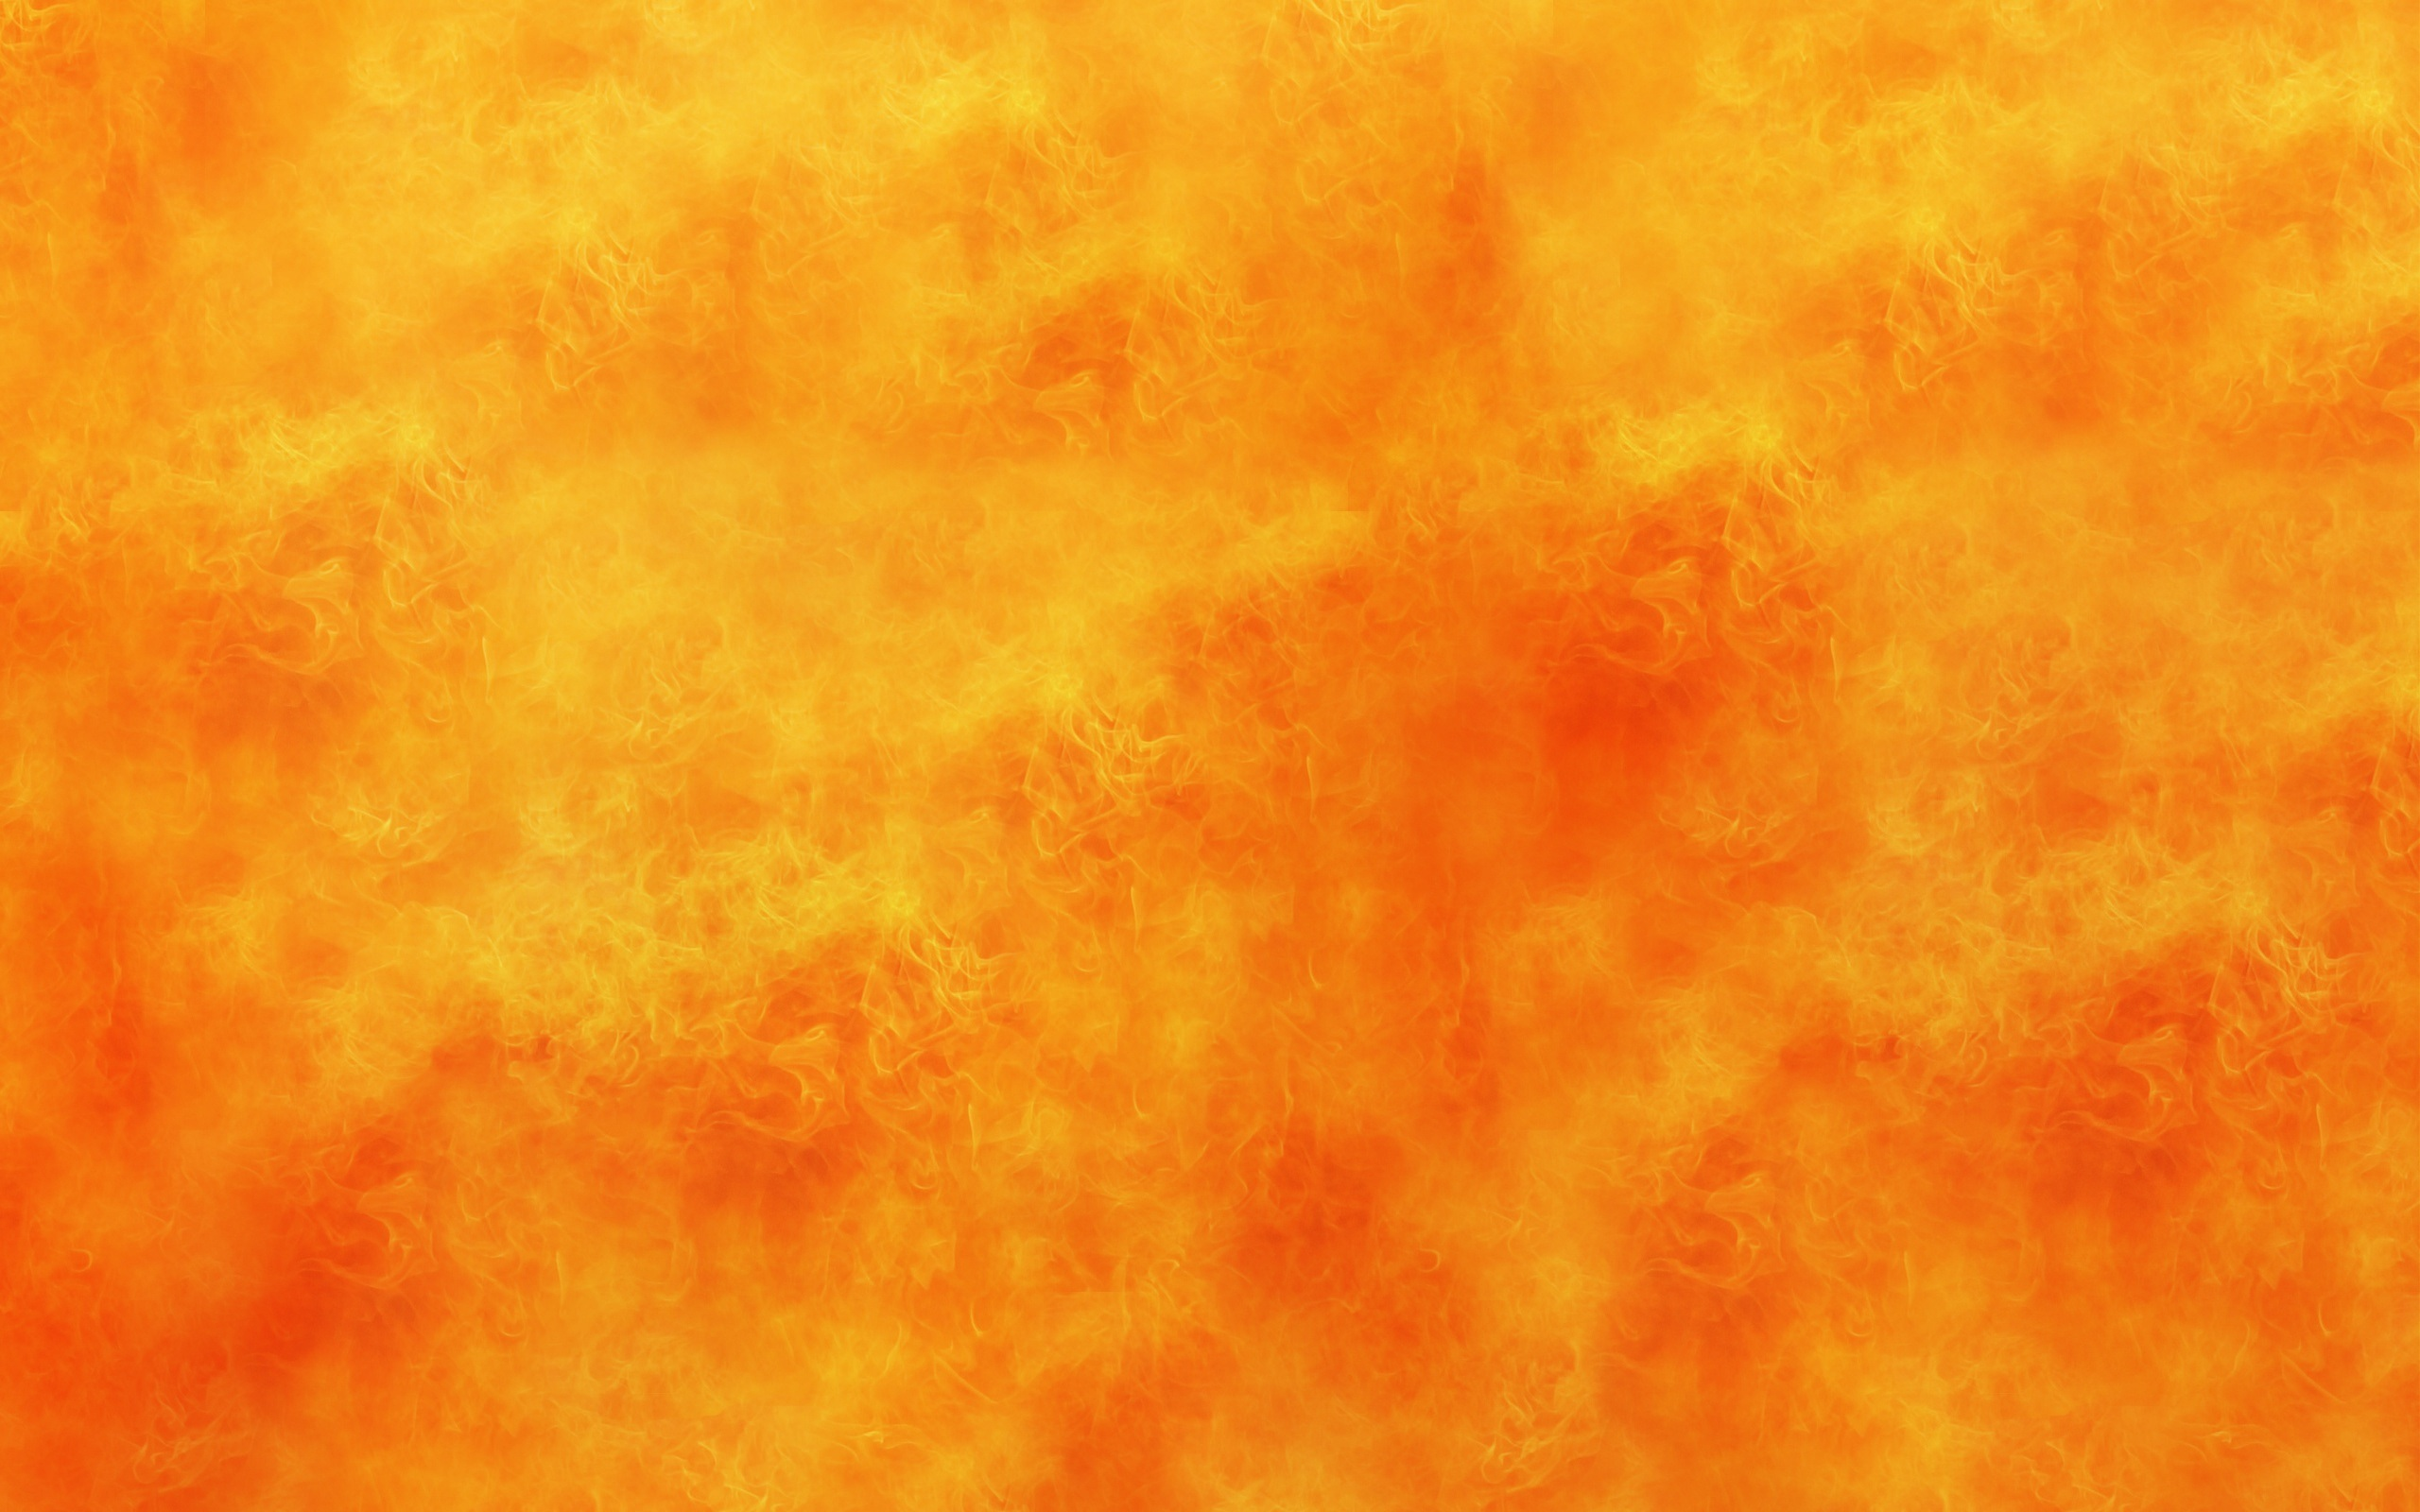 Orange Camo Wallpaper - WallpaperSafari